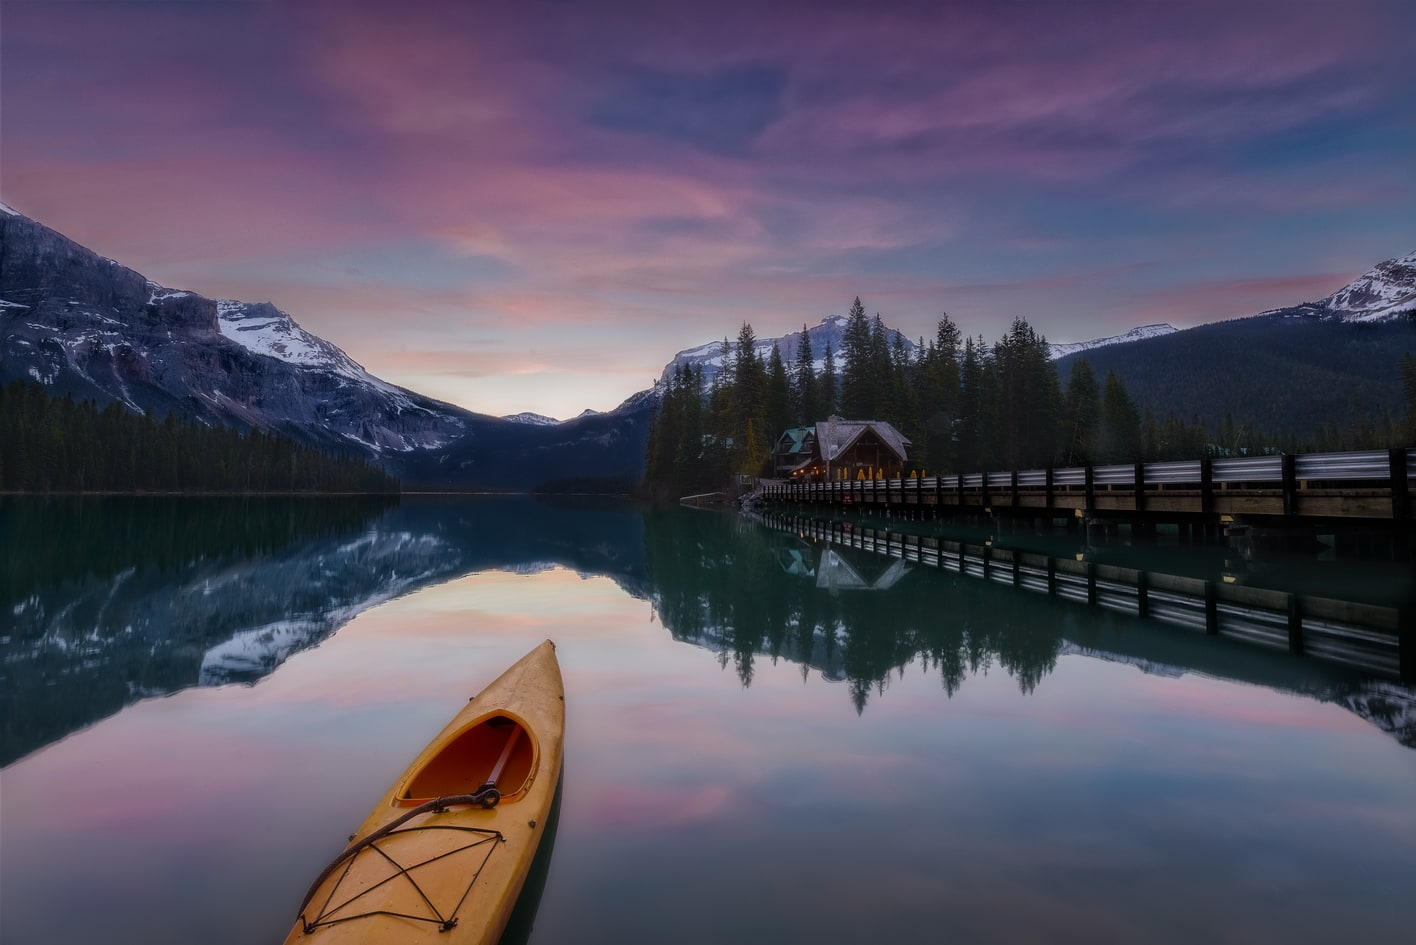 Emerald Lake photo tour canadian rockies workshop